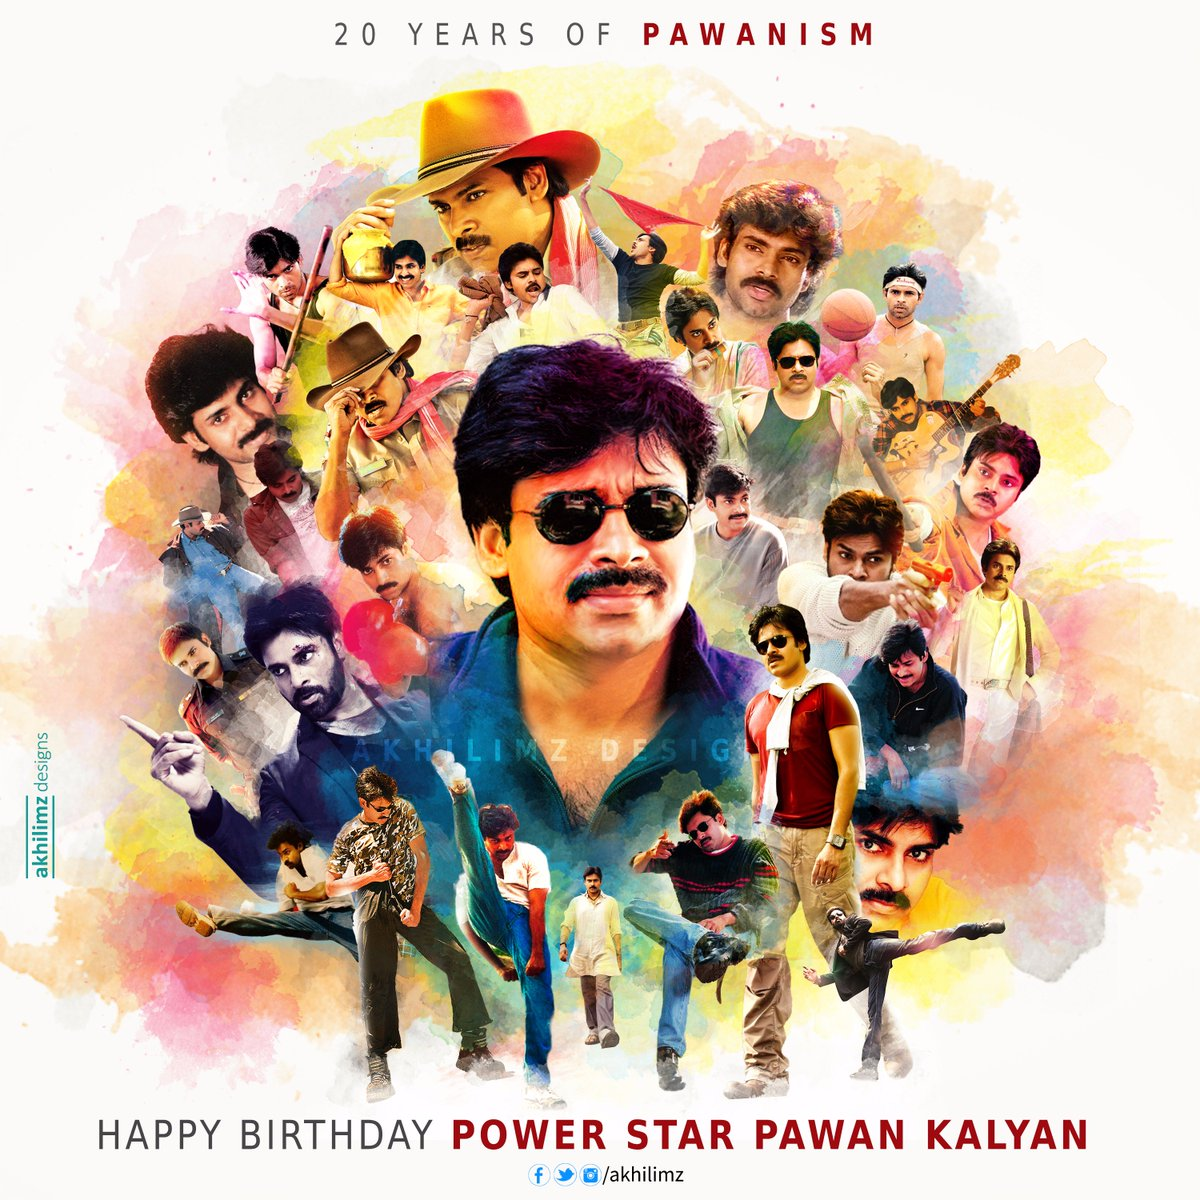 A tribute to a great humanitarian #Powerstar @PawanKalyan garu from #AkhilimzDesigns #CommonDp #HBDPawanKalyan https://t.co/1X2bErC1El